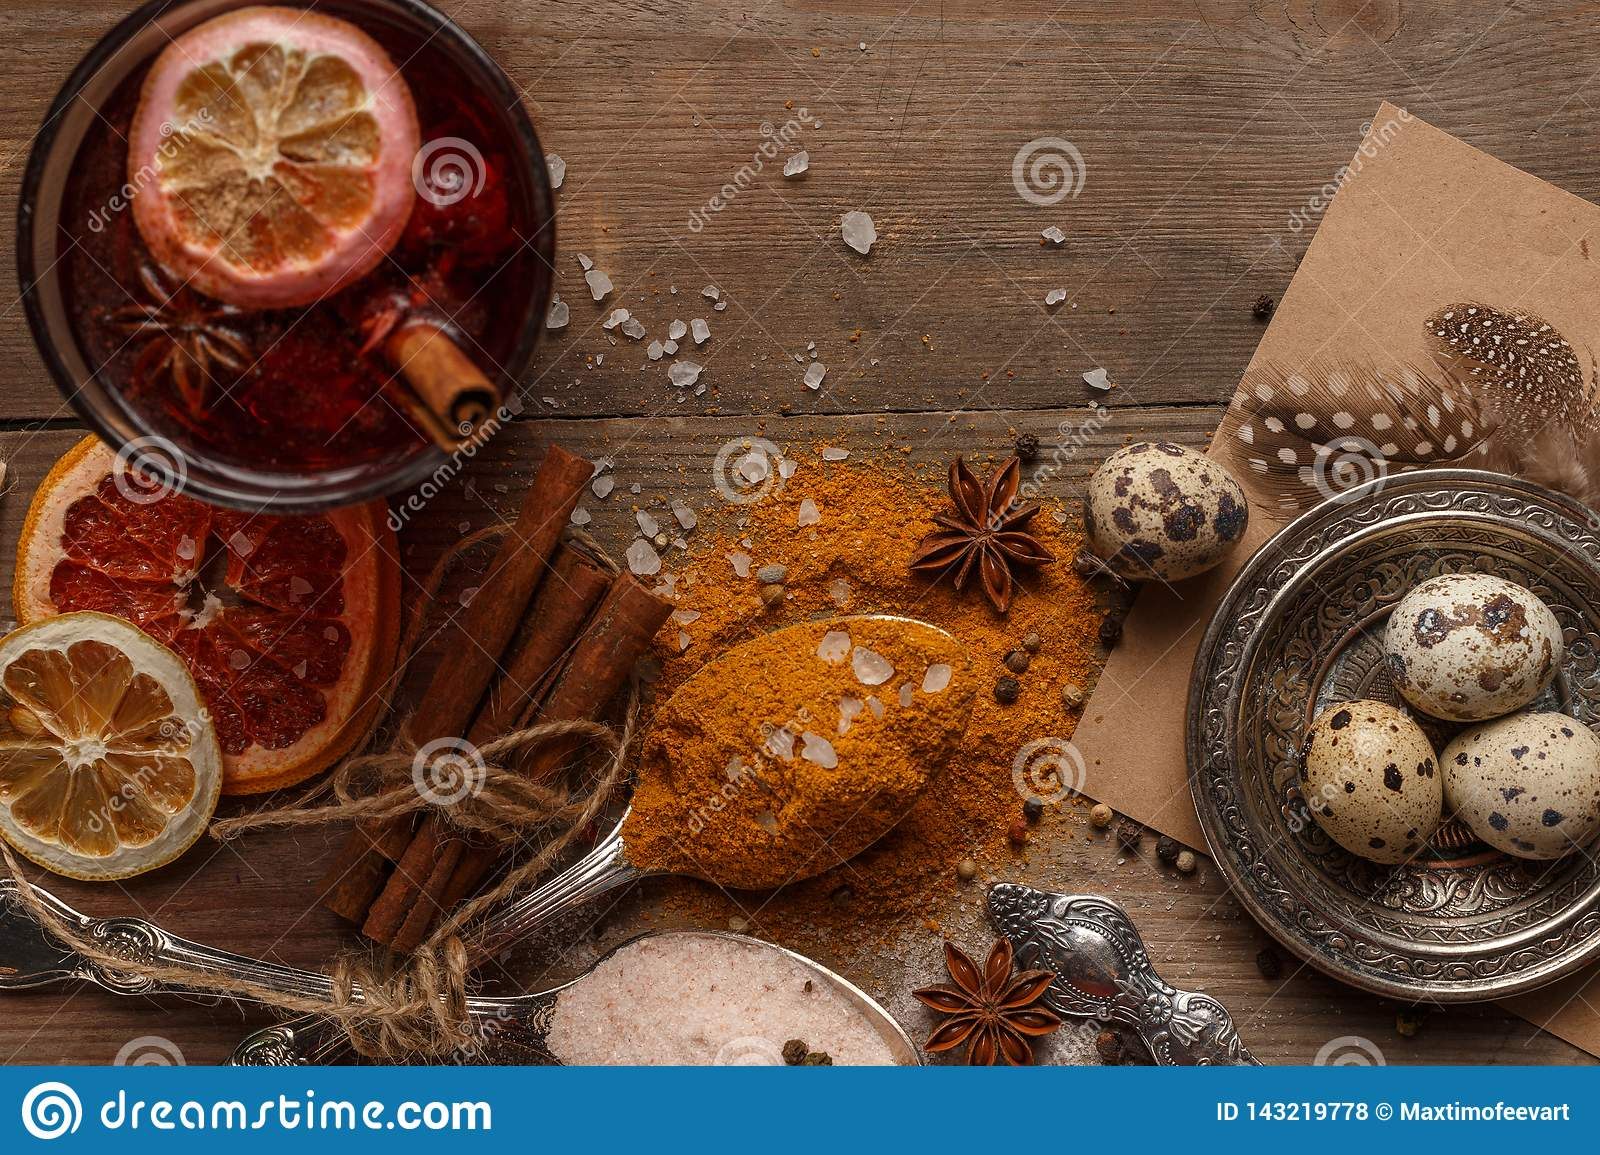 Mulled wine, spices and dried fruits on a rustic table